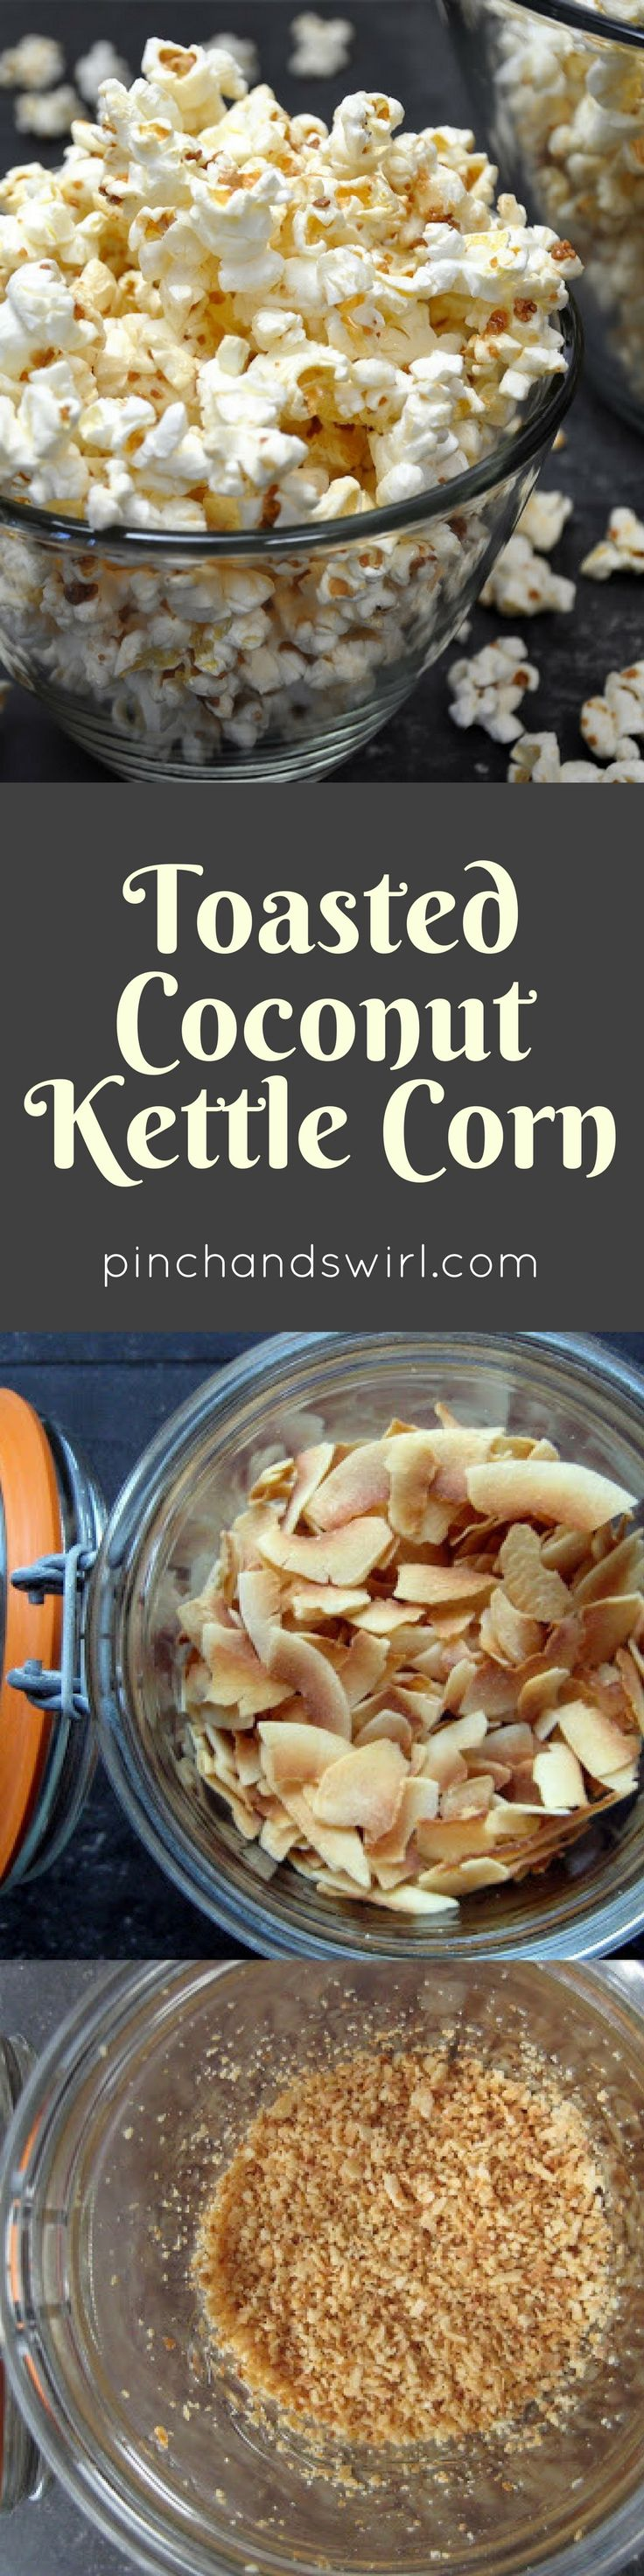 Coconut oil kettle corn is a recipe twist on traditional kettle corn, popping pop corn in coconut oil along with toasted coconut, salt and sugar gives crispy popcorn a delicate crunchy, salty sweet coating. Such an easy snack recipe that is an all-ages crowd pleaser!